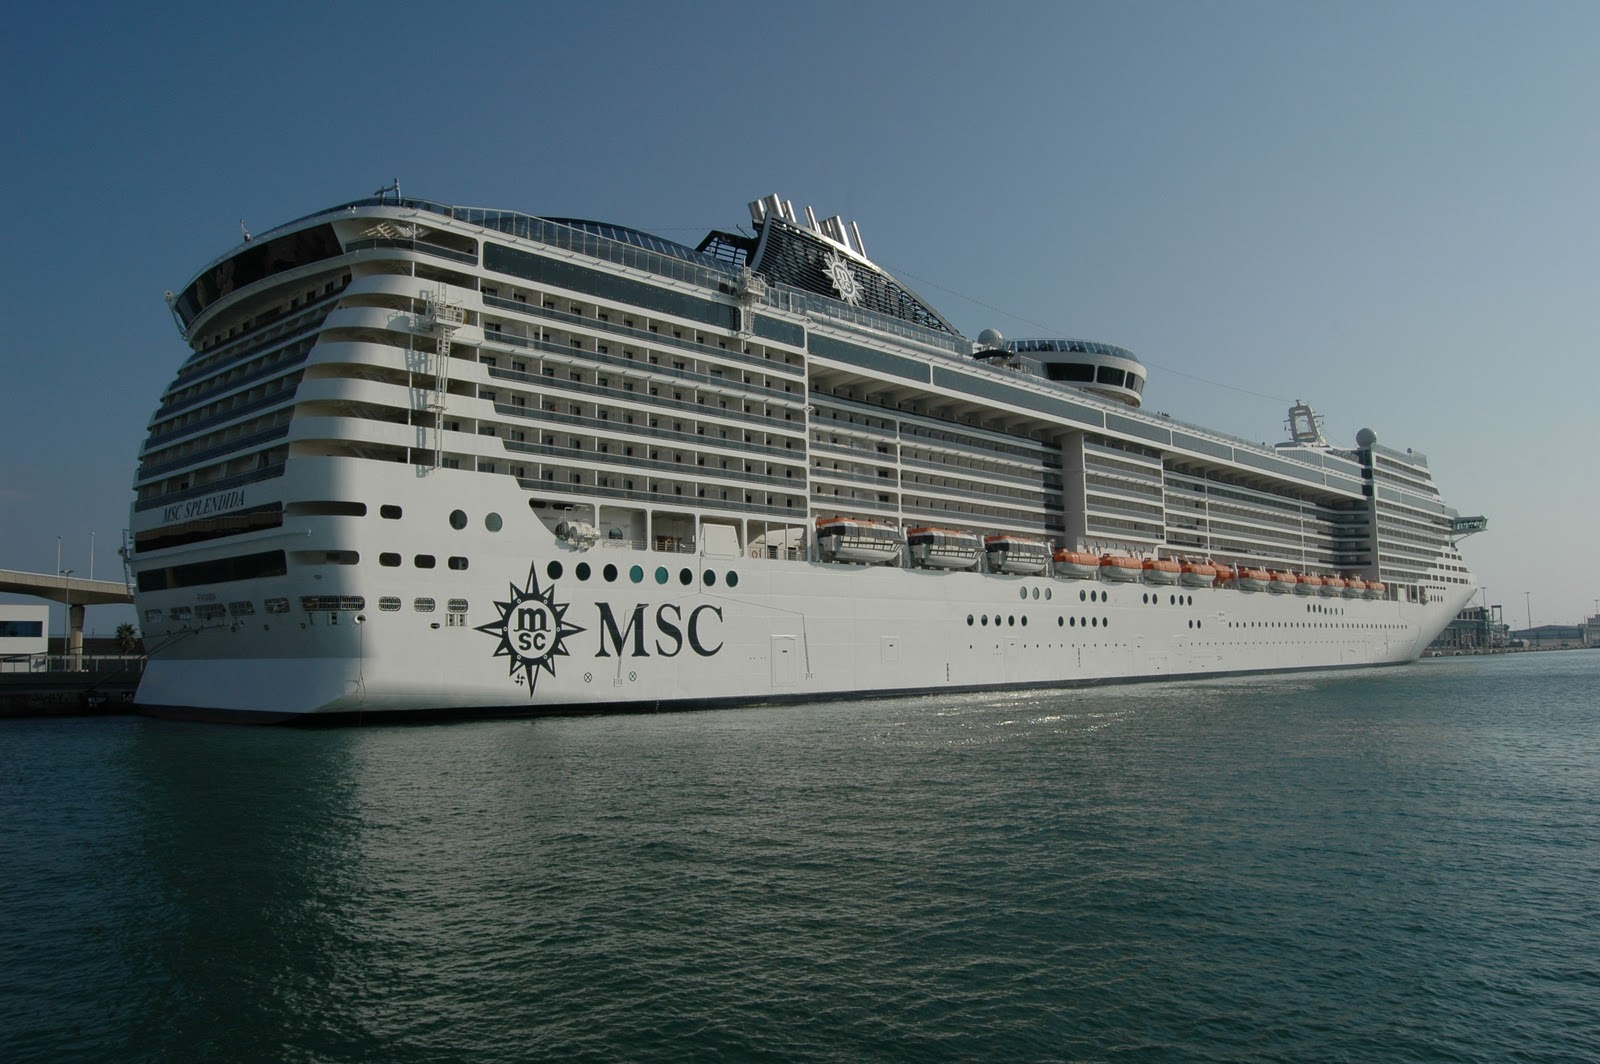 NAVIGATIONCruising And Maritime Themes MSC CRUISES The